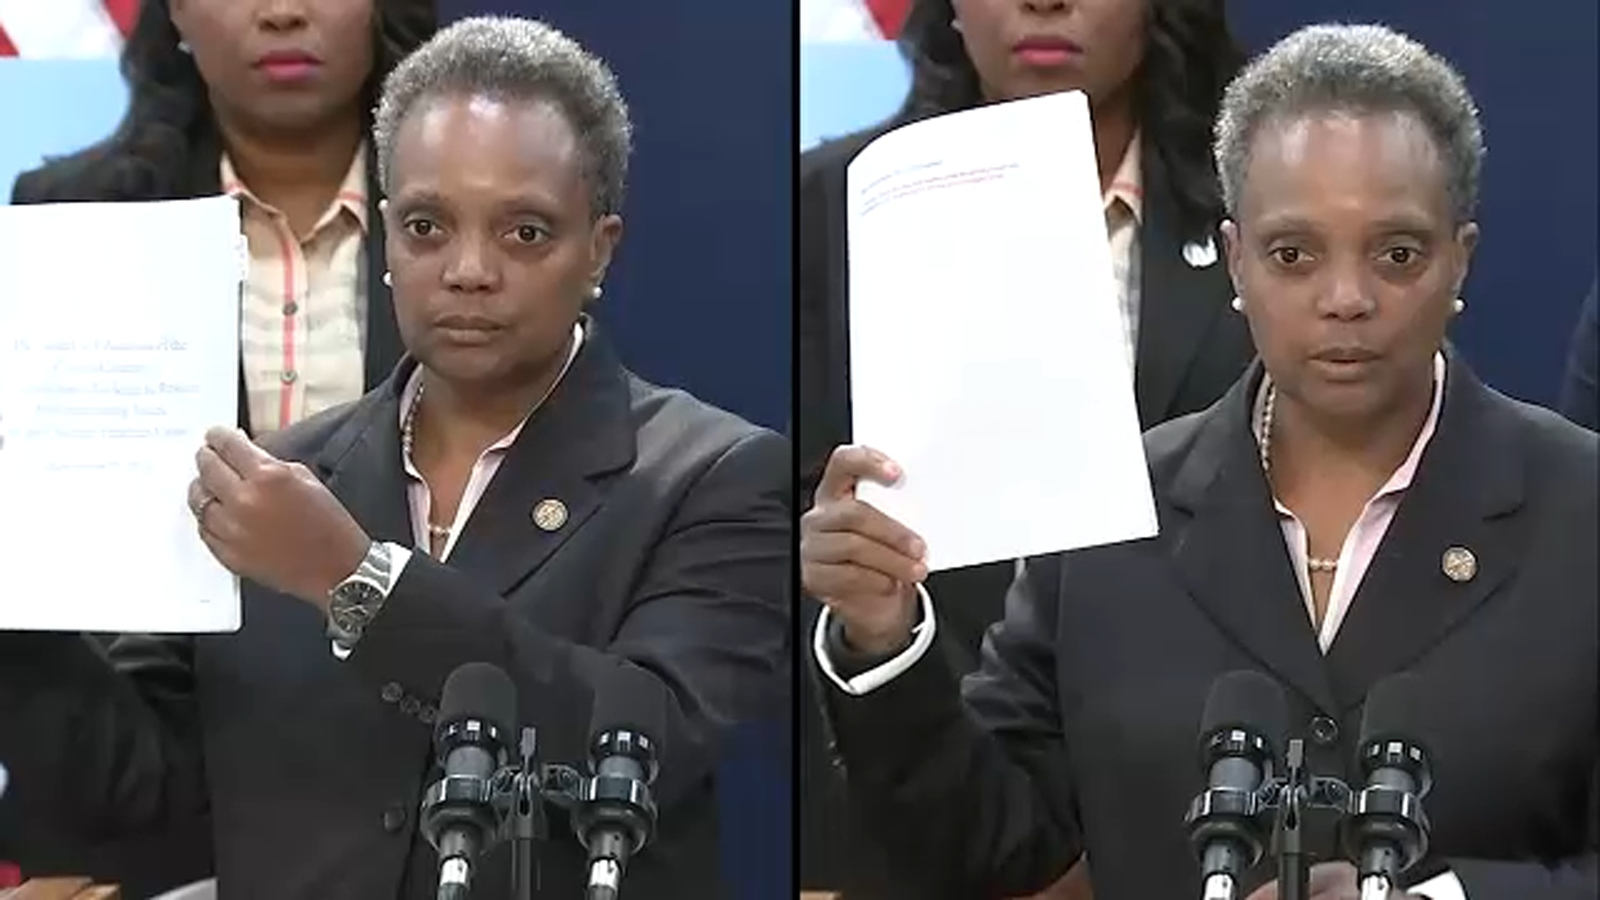 Mayor Lori Lightfoot says 'urgency' needed from CTU to avert teacher strike